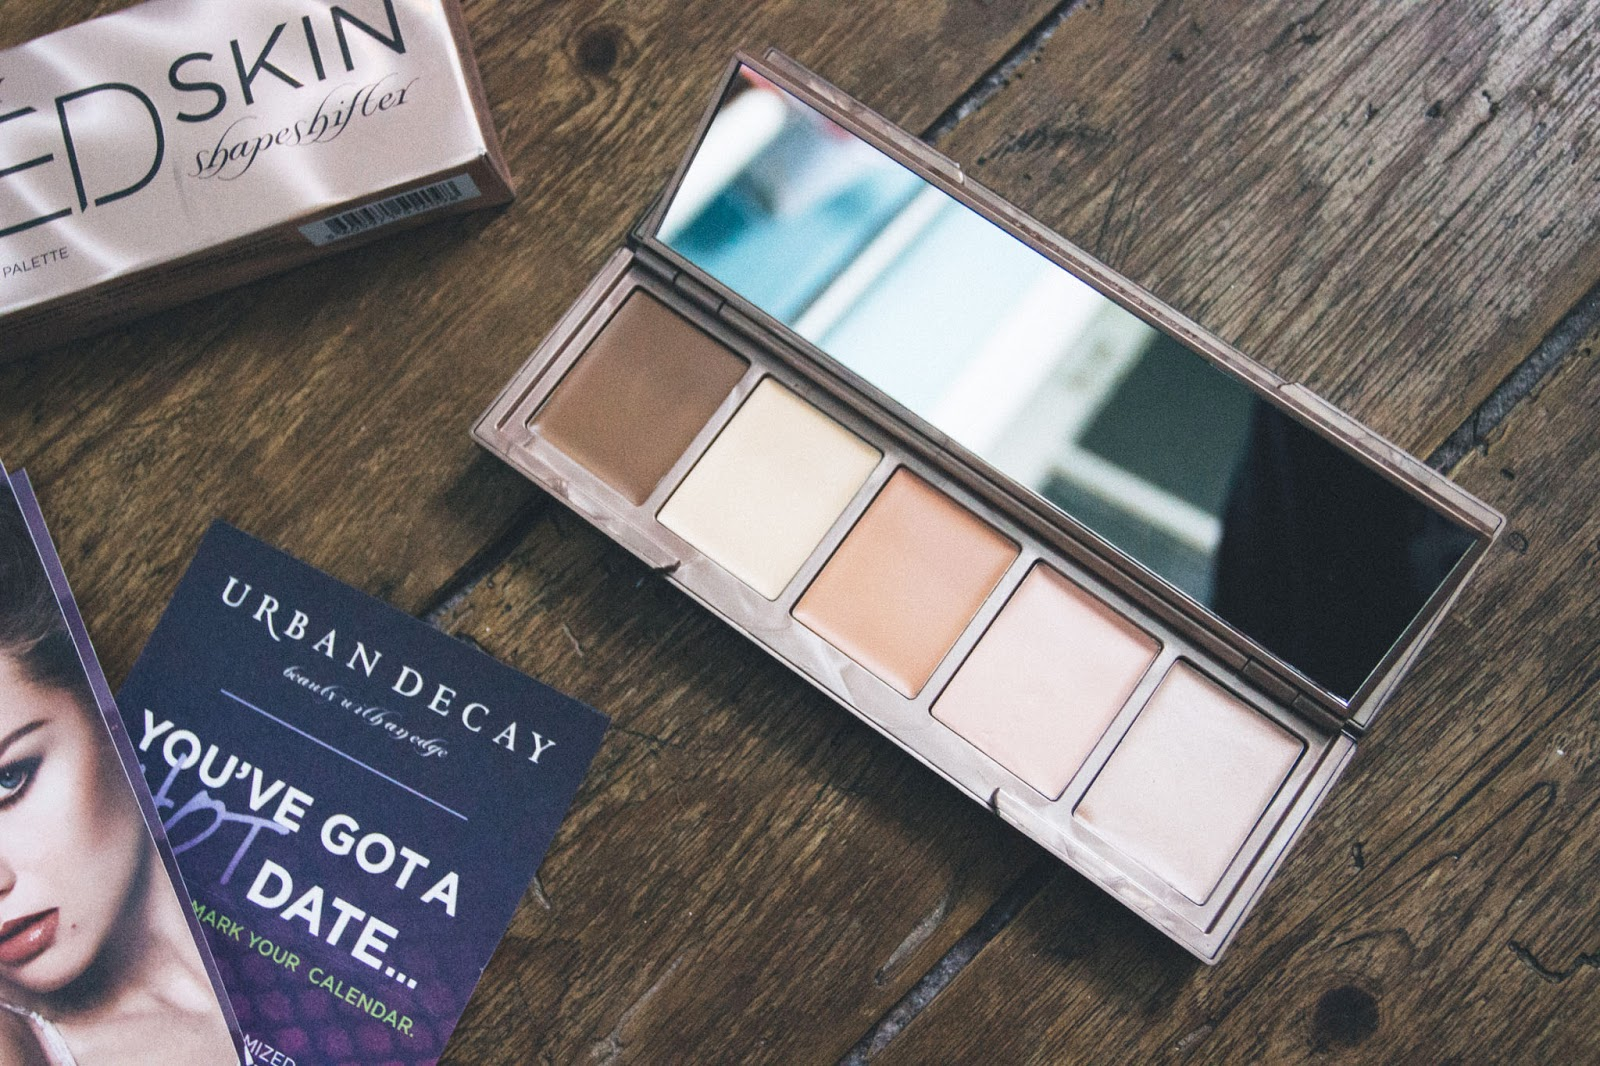 Urban Decay Naked Skin Shapeshifter Contour Palette